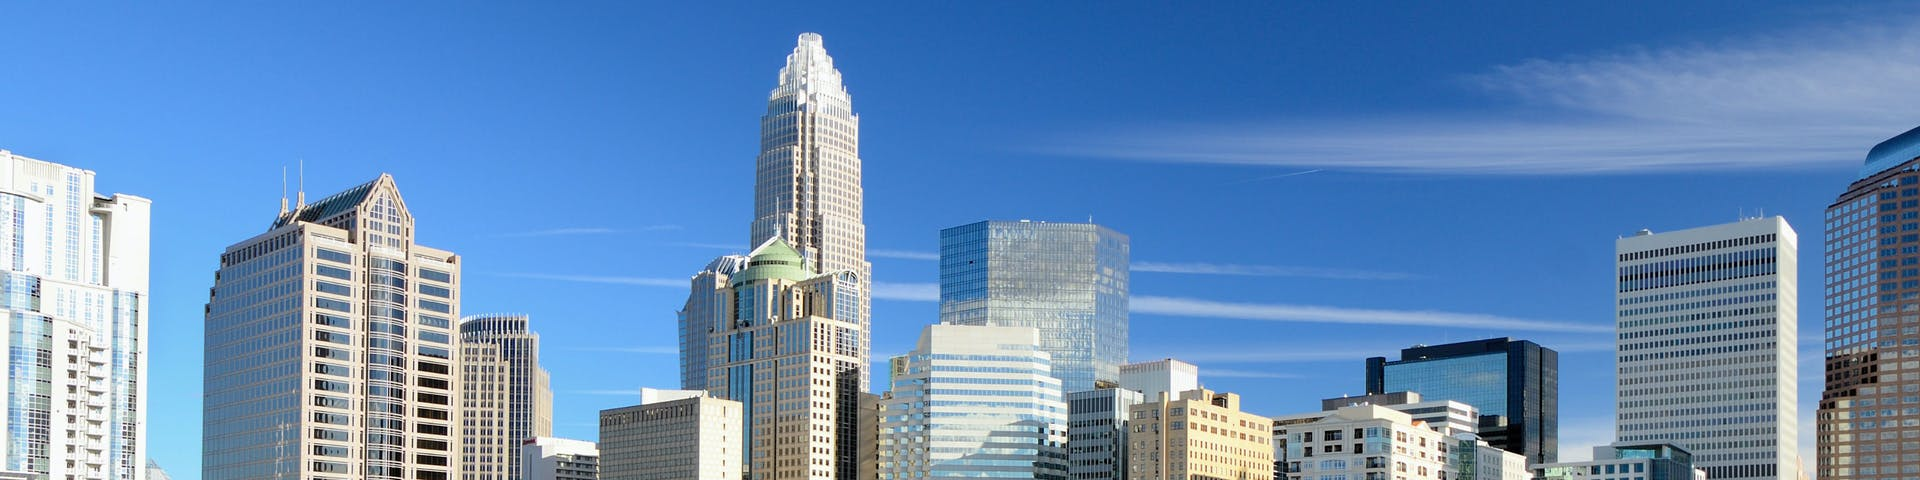 Masters degree in Charlotte - North Carolina, United States